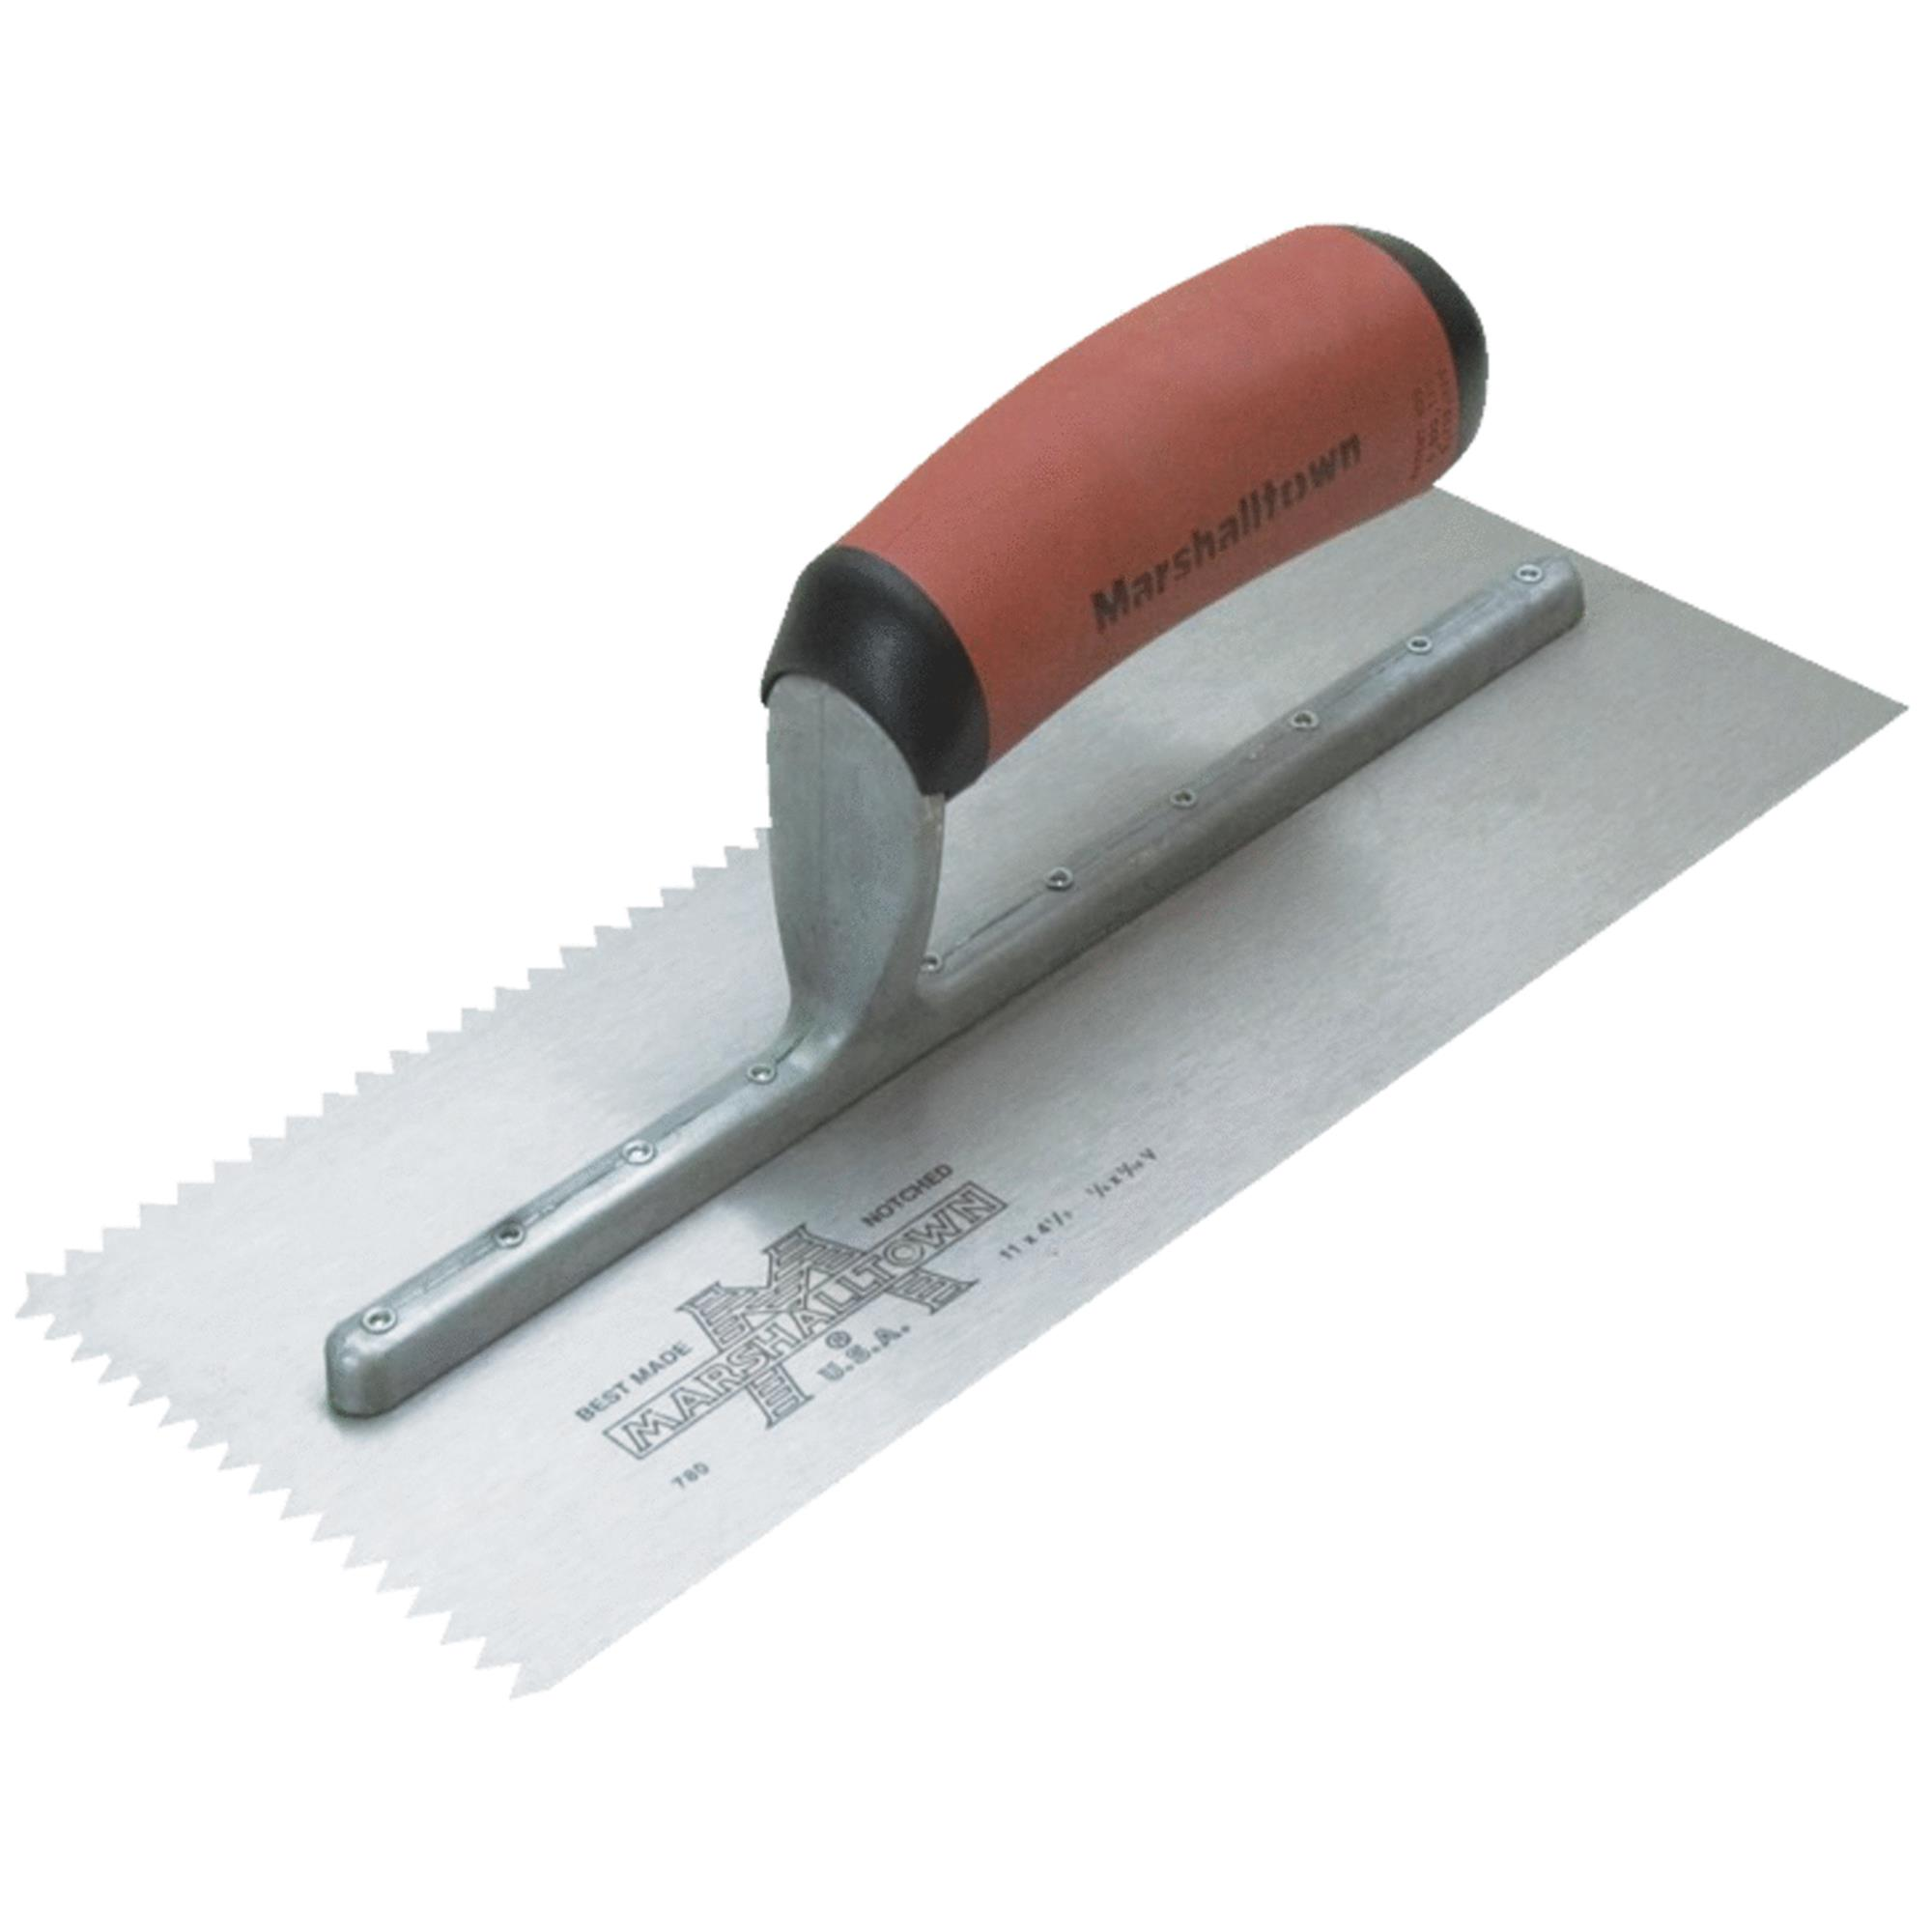 Marshalltown Notched Trowel